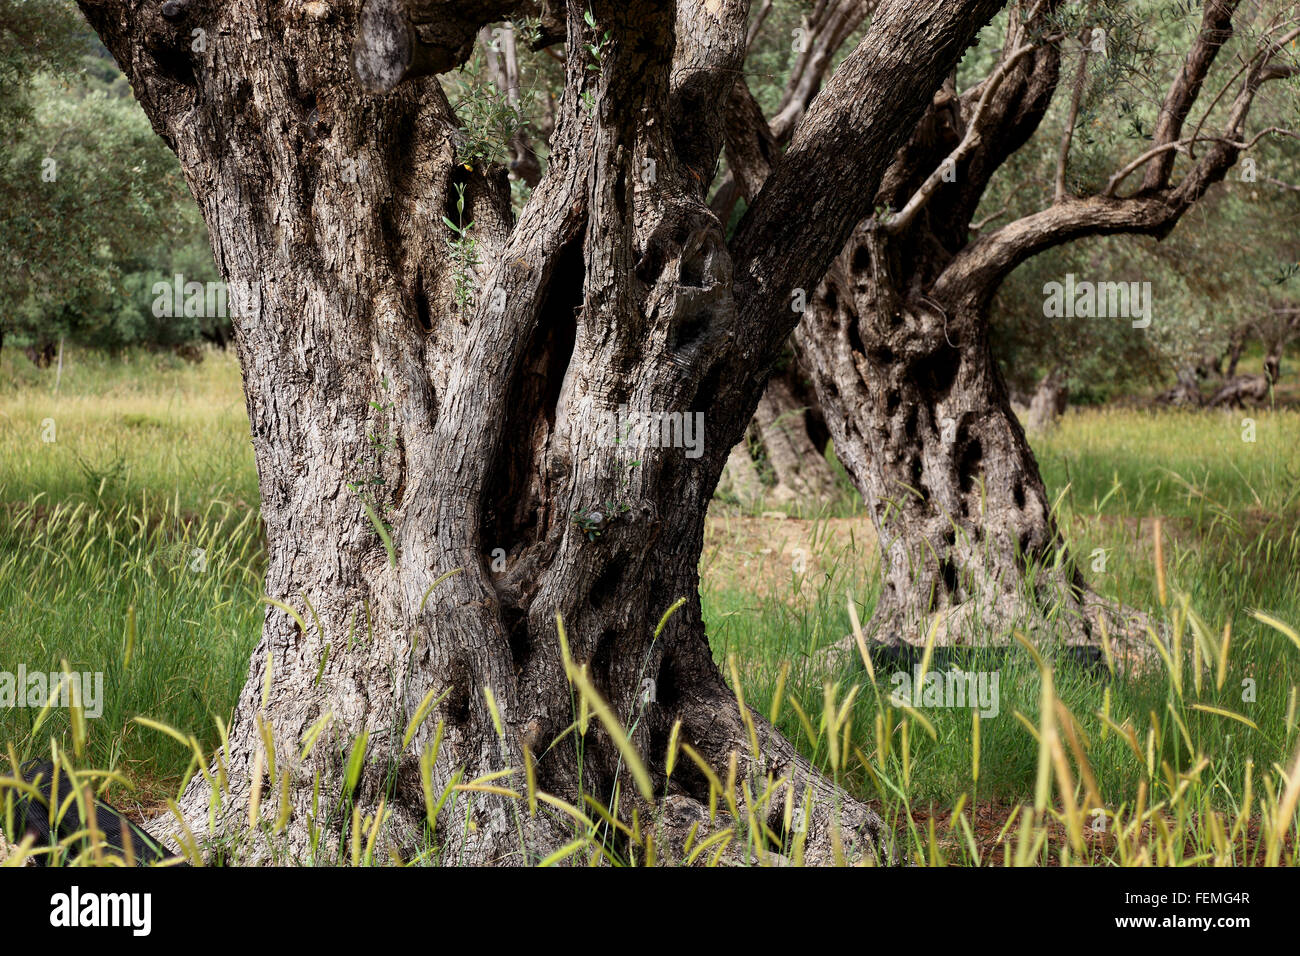 Crete, old olive trees, thicker droll trunk, olive wood - Stock Image